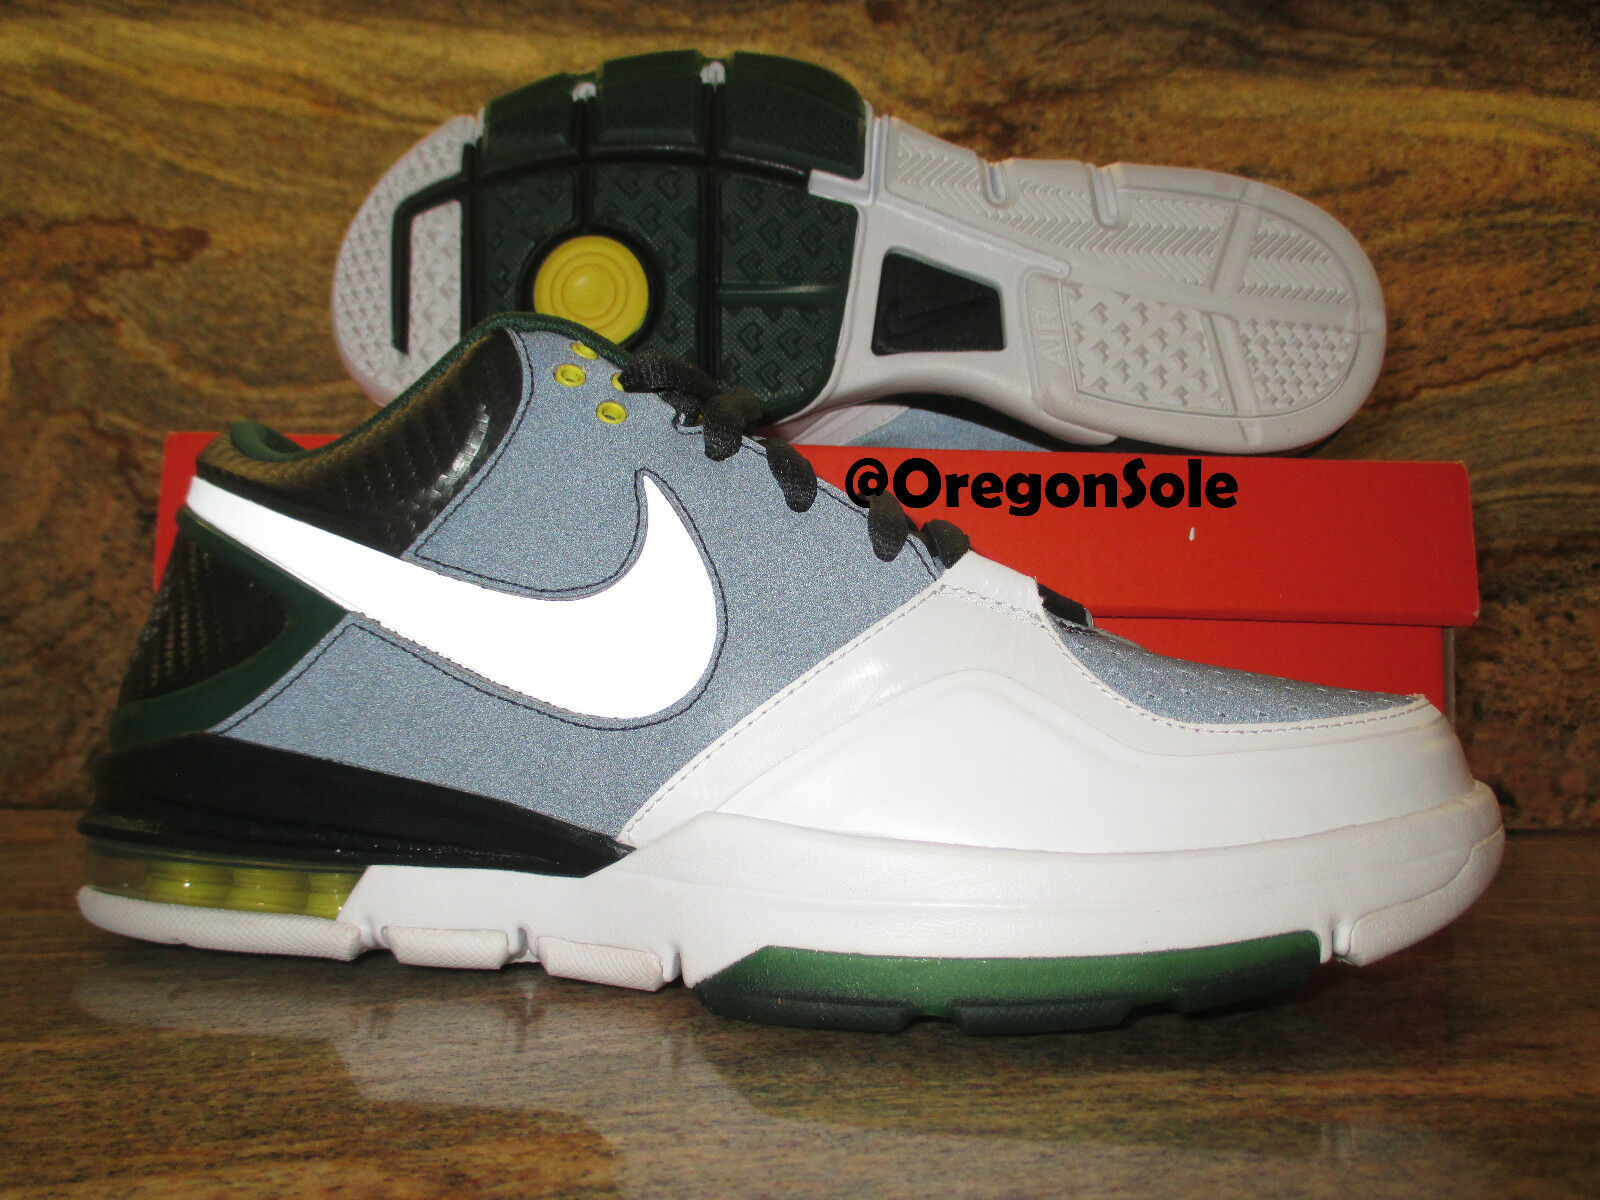 Nike Air Max Trainer 1.3 Mid Unreleased Promo Sample Price reduction The most popular shoes for men and women